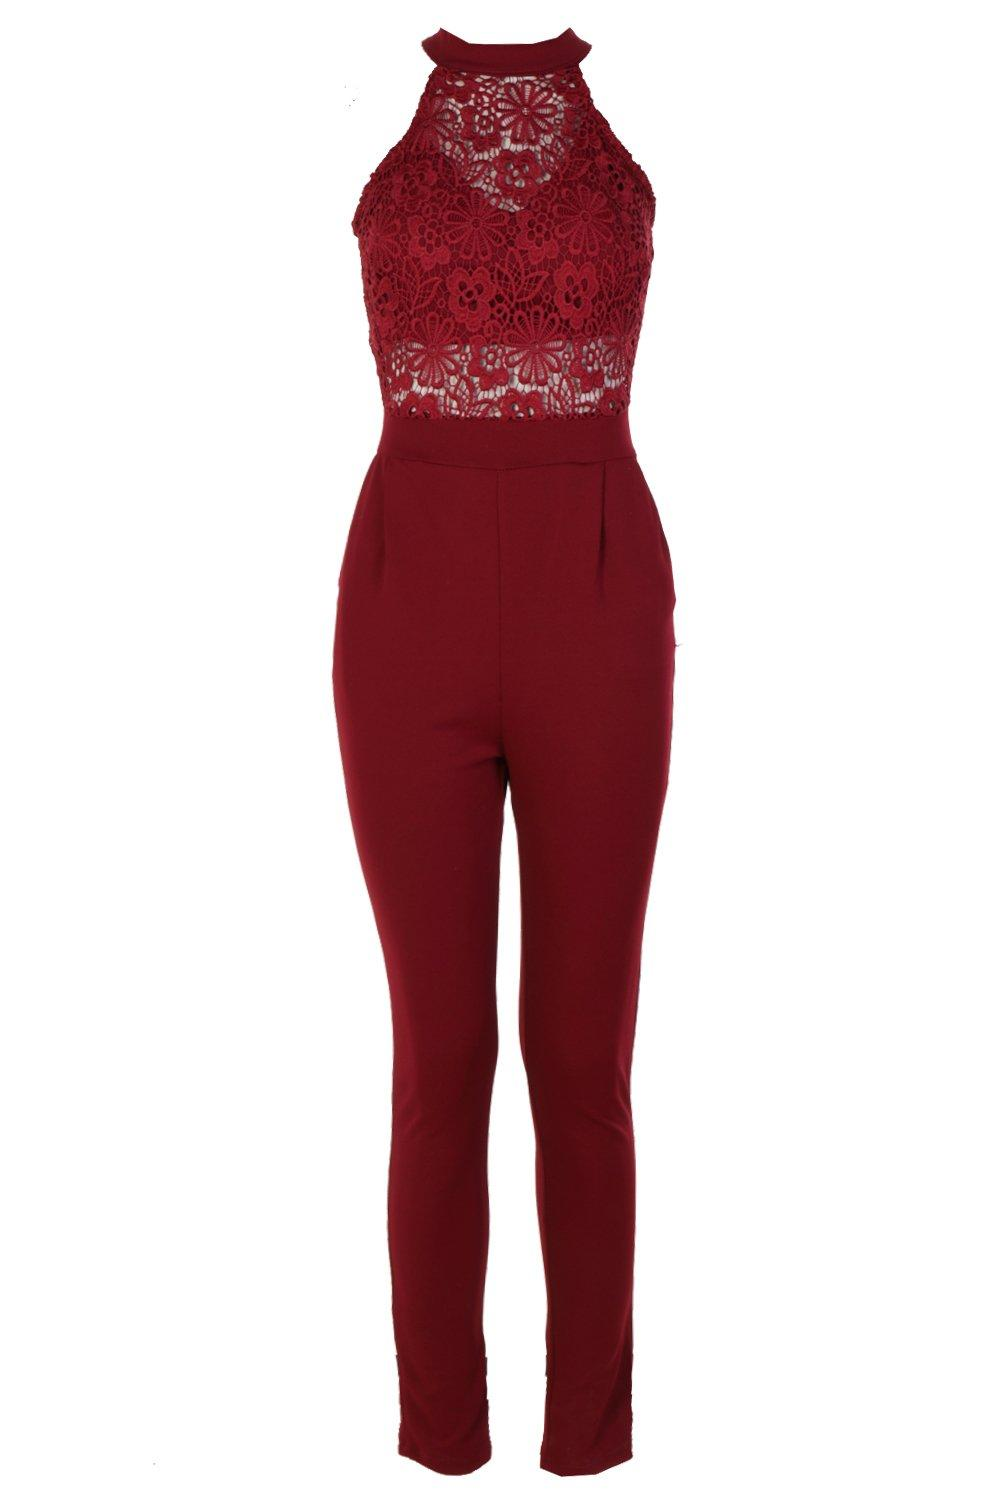 Crochet berry High High Crochet berry Neck Jumpsuit Jumpsuit Neck Neck High Awxqwv8aRn